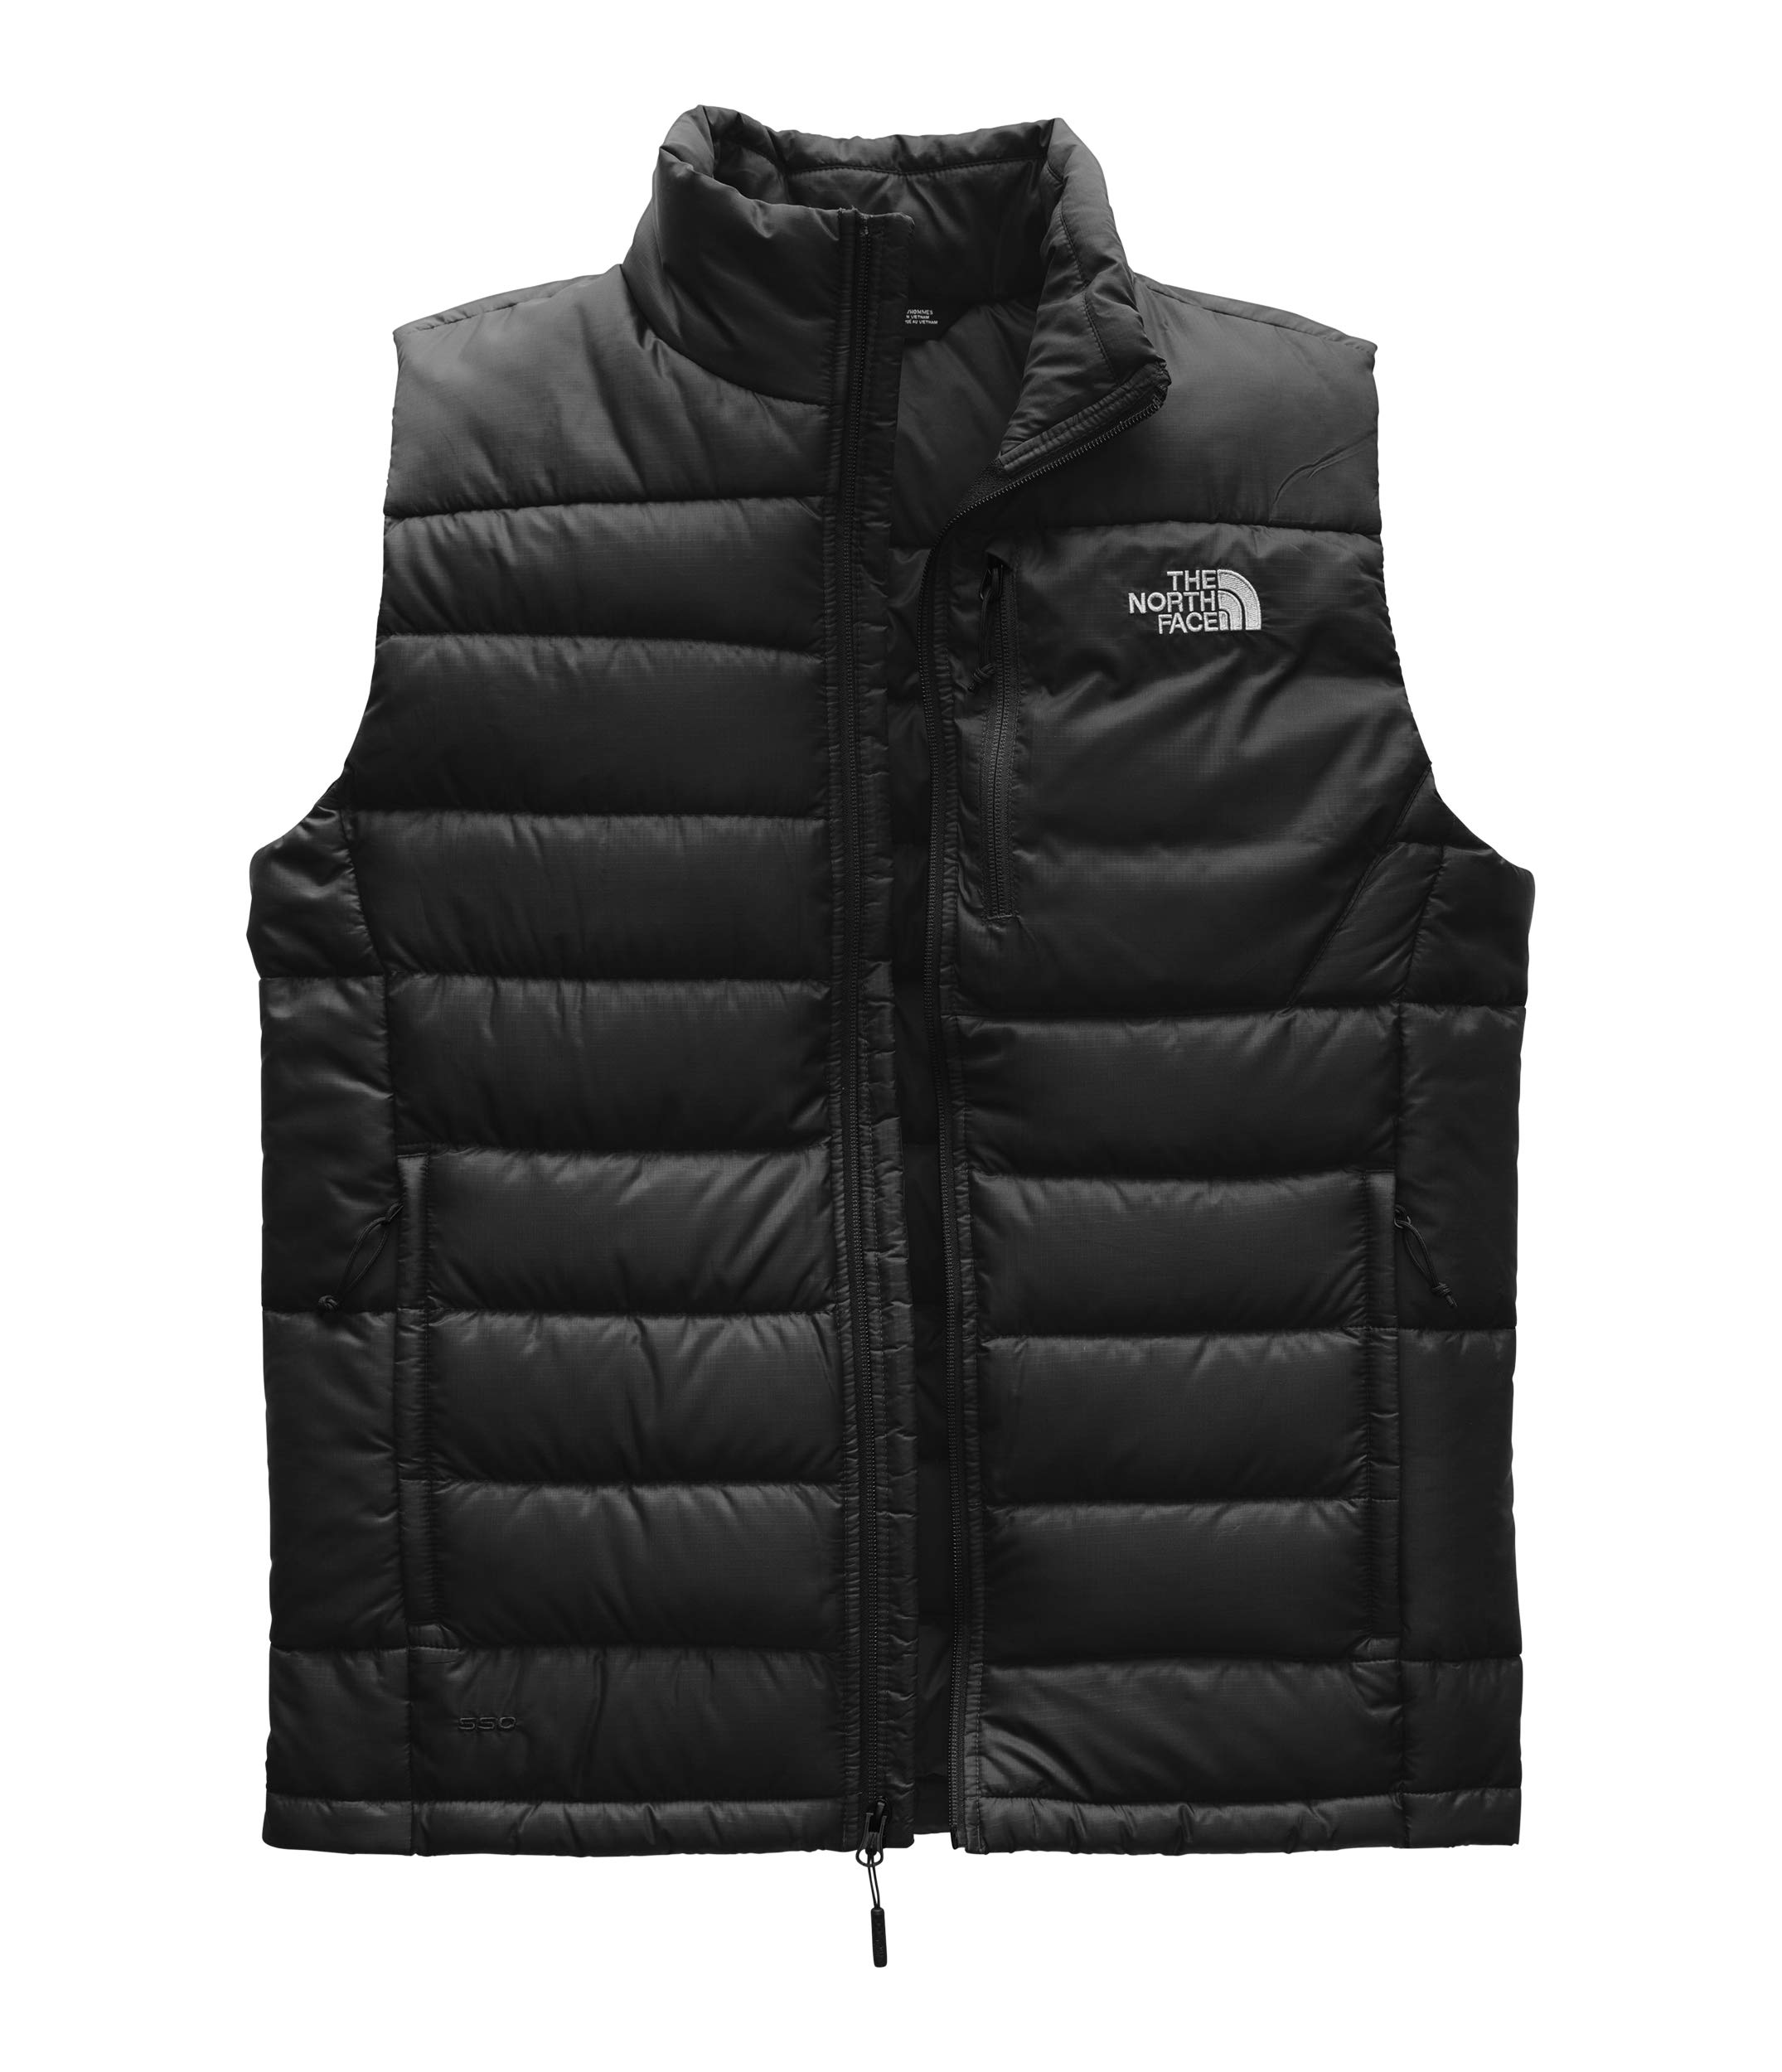 The North Face Men's Aconcagua Vest - TNF Black - L by The North Face